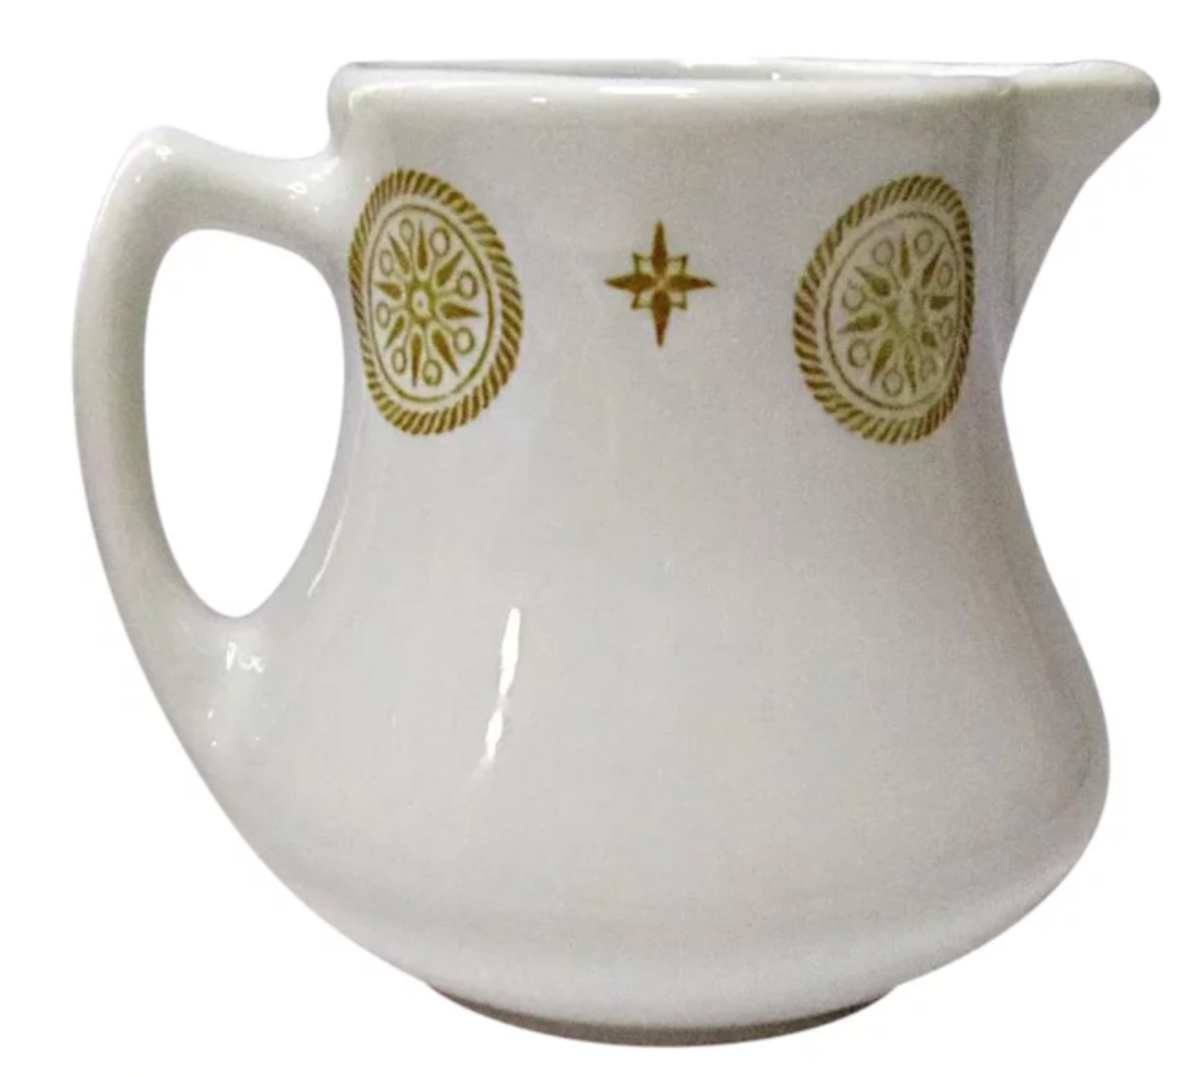 """A vintage cream pitcher by Shenango, with a gold medallion and star pattern. This pattern was popular and made for many years. The size is approximately 3-1/4"""" h x 3-1/2"""" w; $14."""